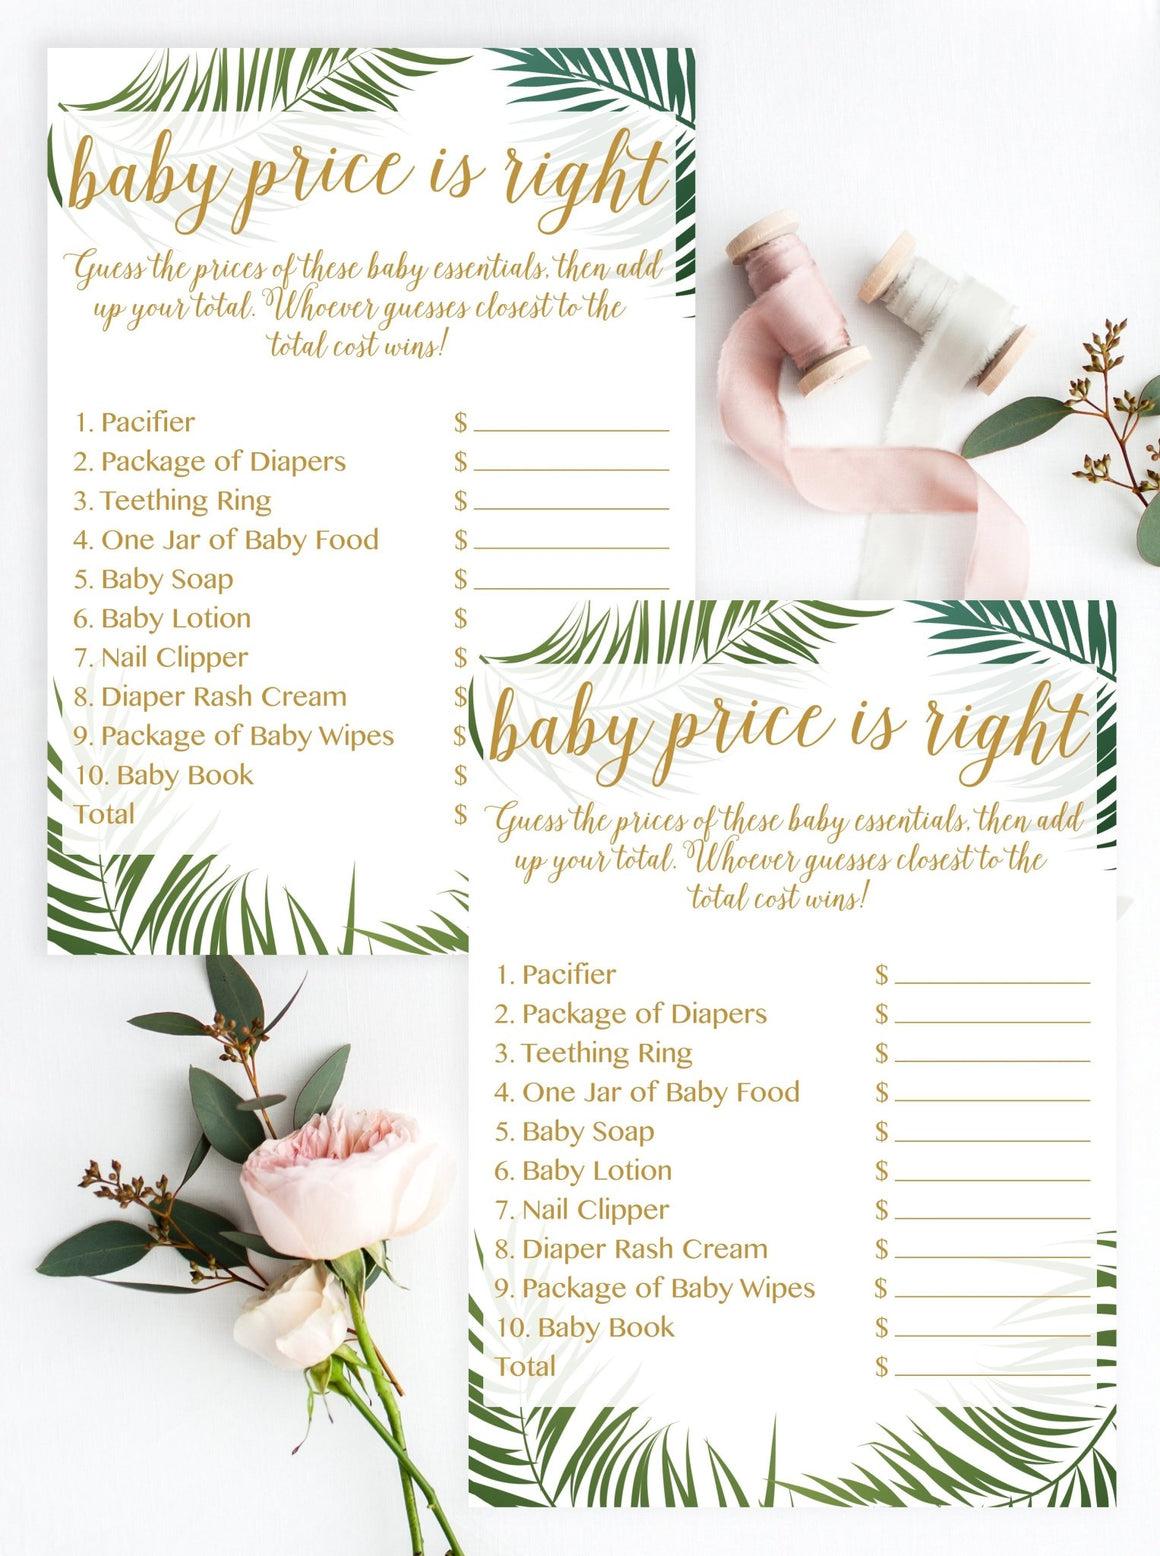 Baby Price Is Right - Tropical Printable - Pretty Collected